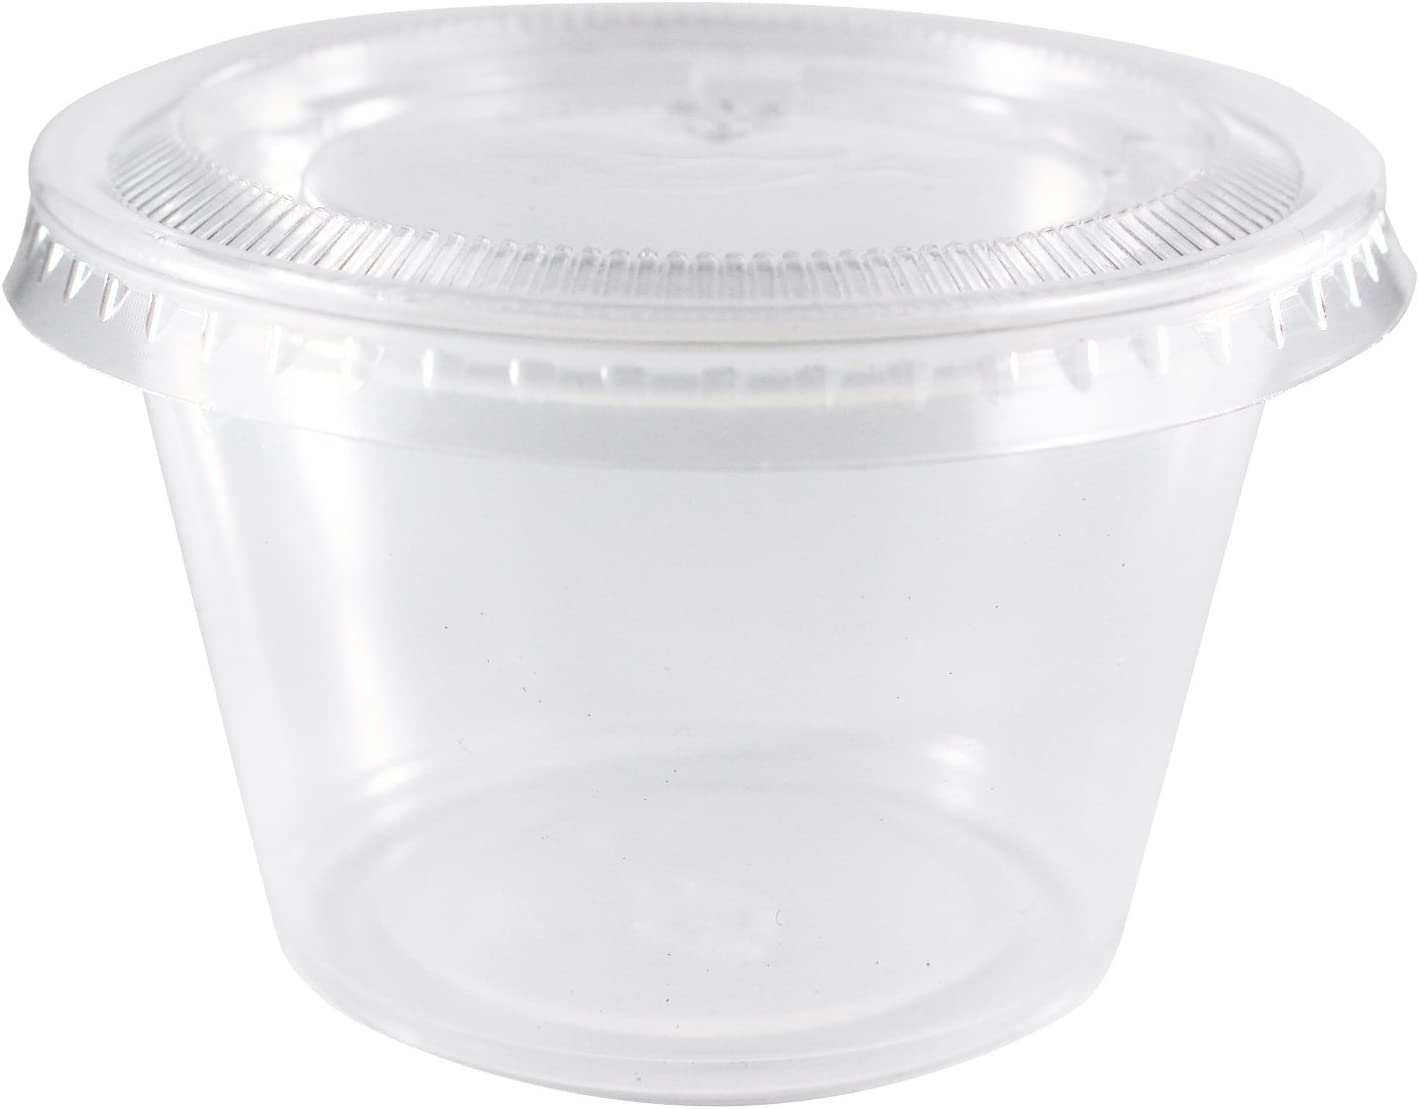 EDI Clear Plastic Disposable Portion Cups with Lids, 4 Ounce (100 Count)